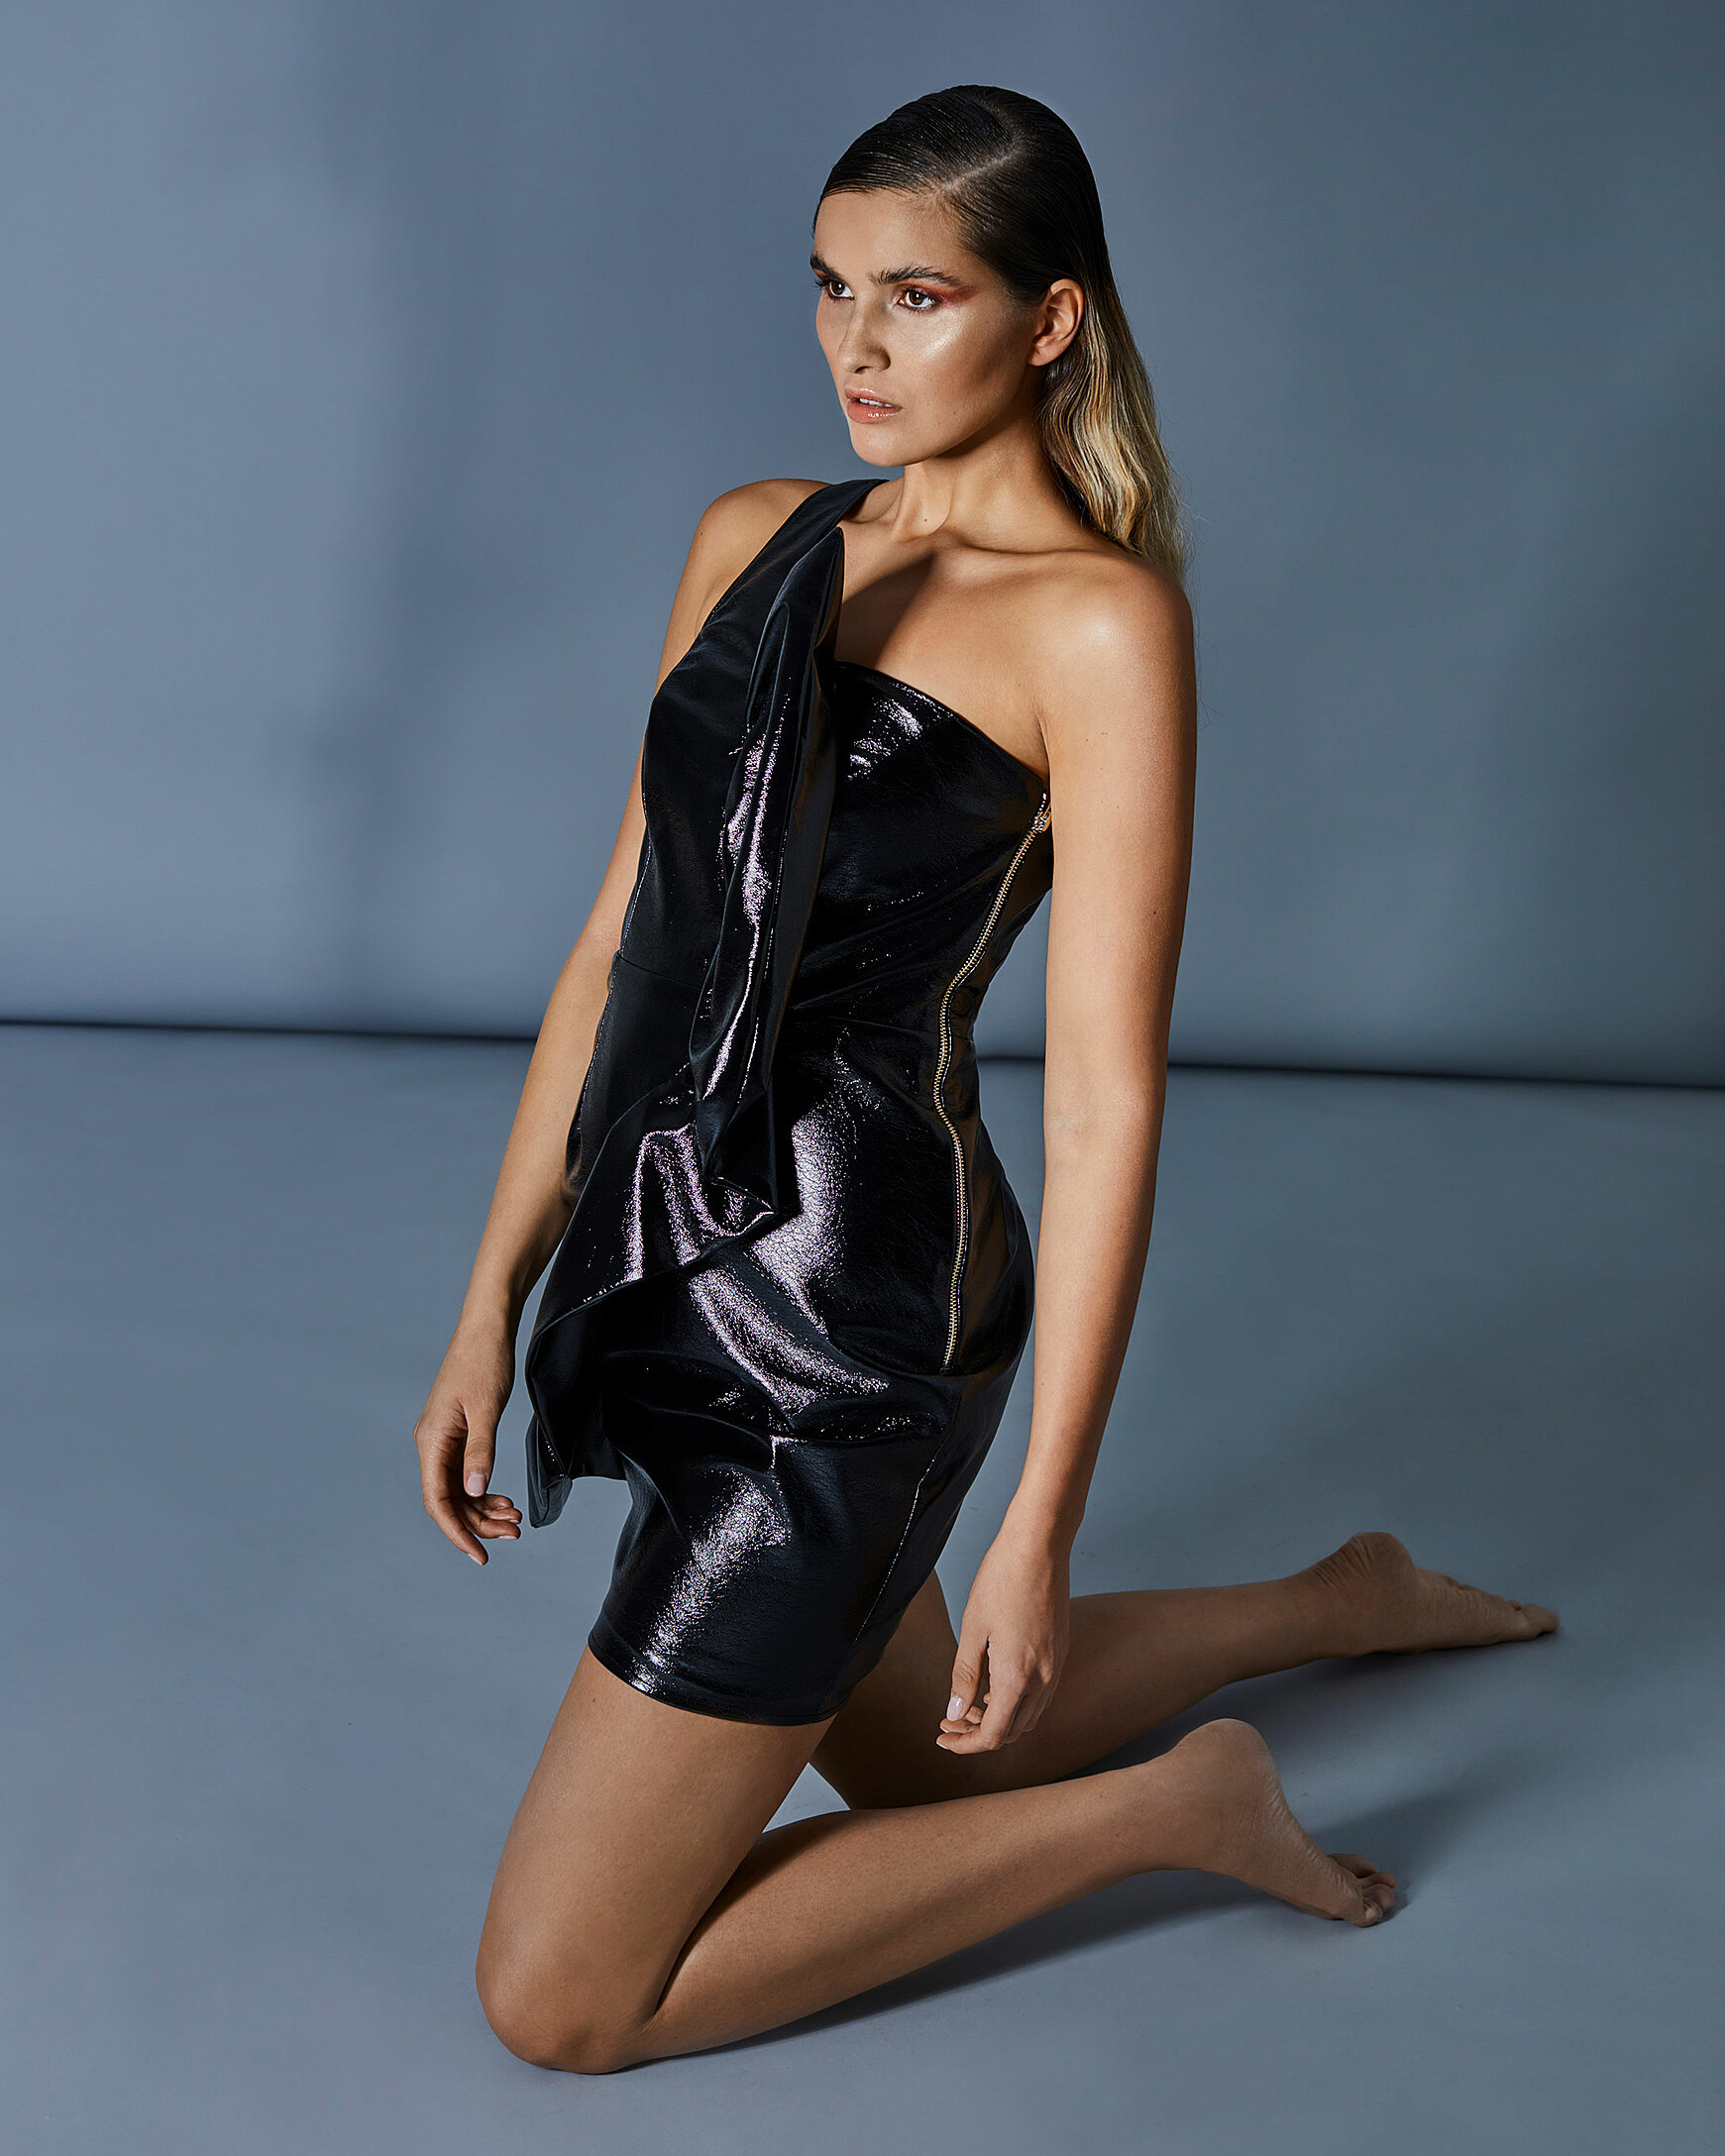 A female model knee on the ground in a strong pose with a black one-shoulder dress